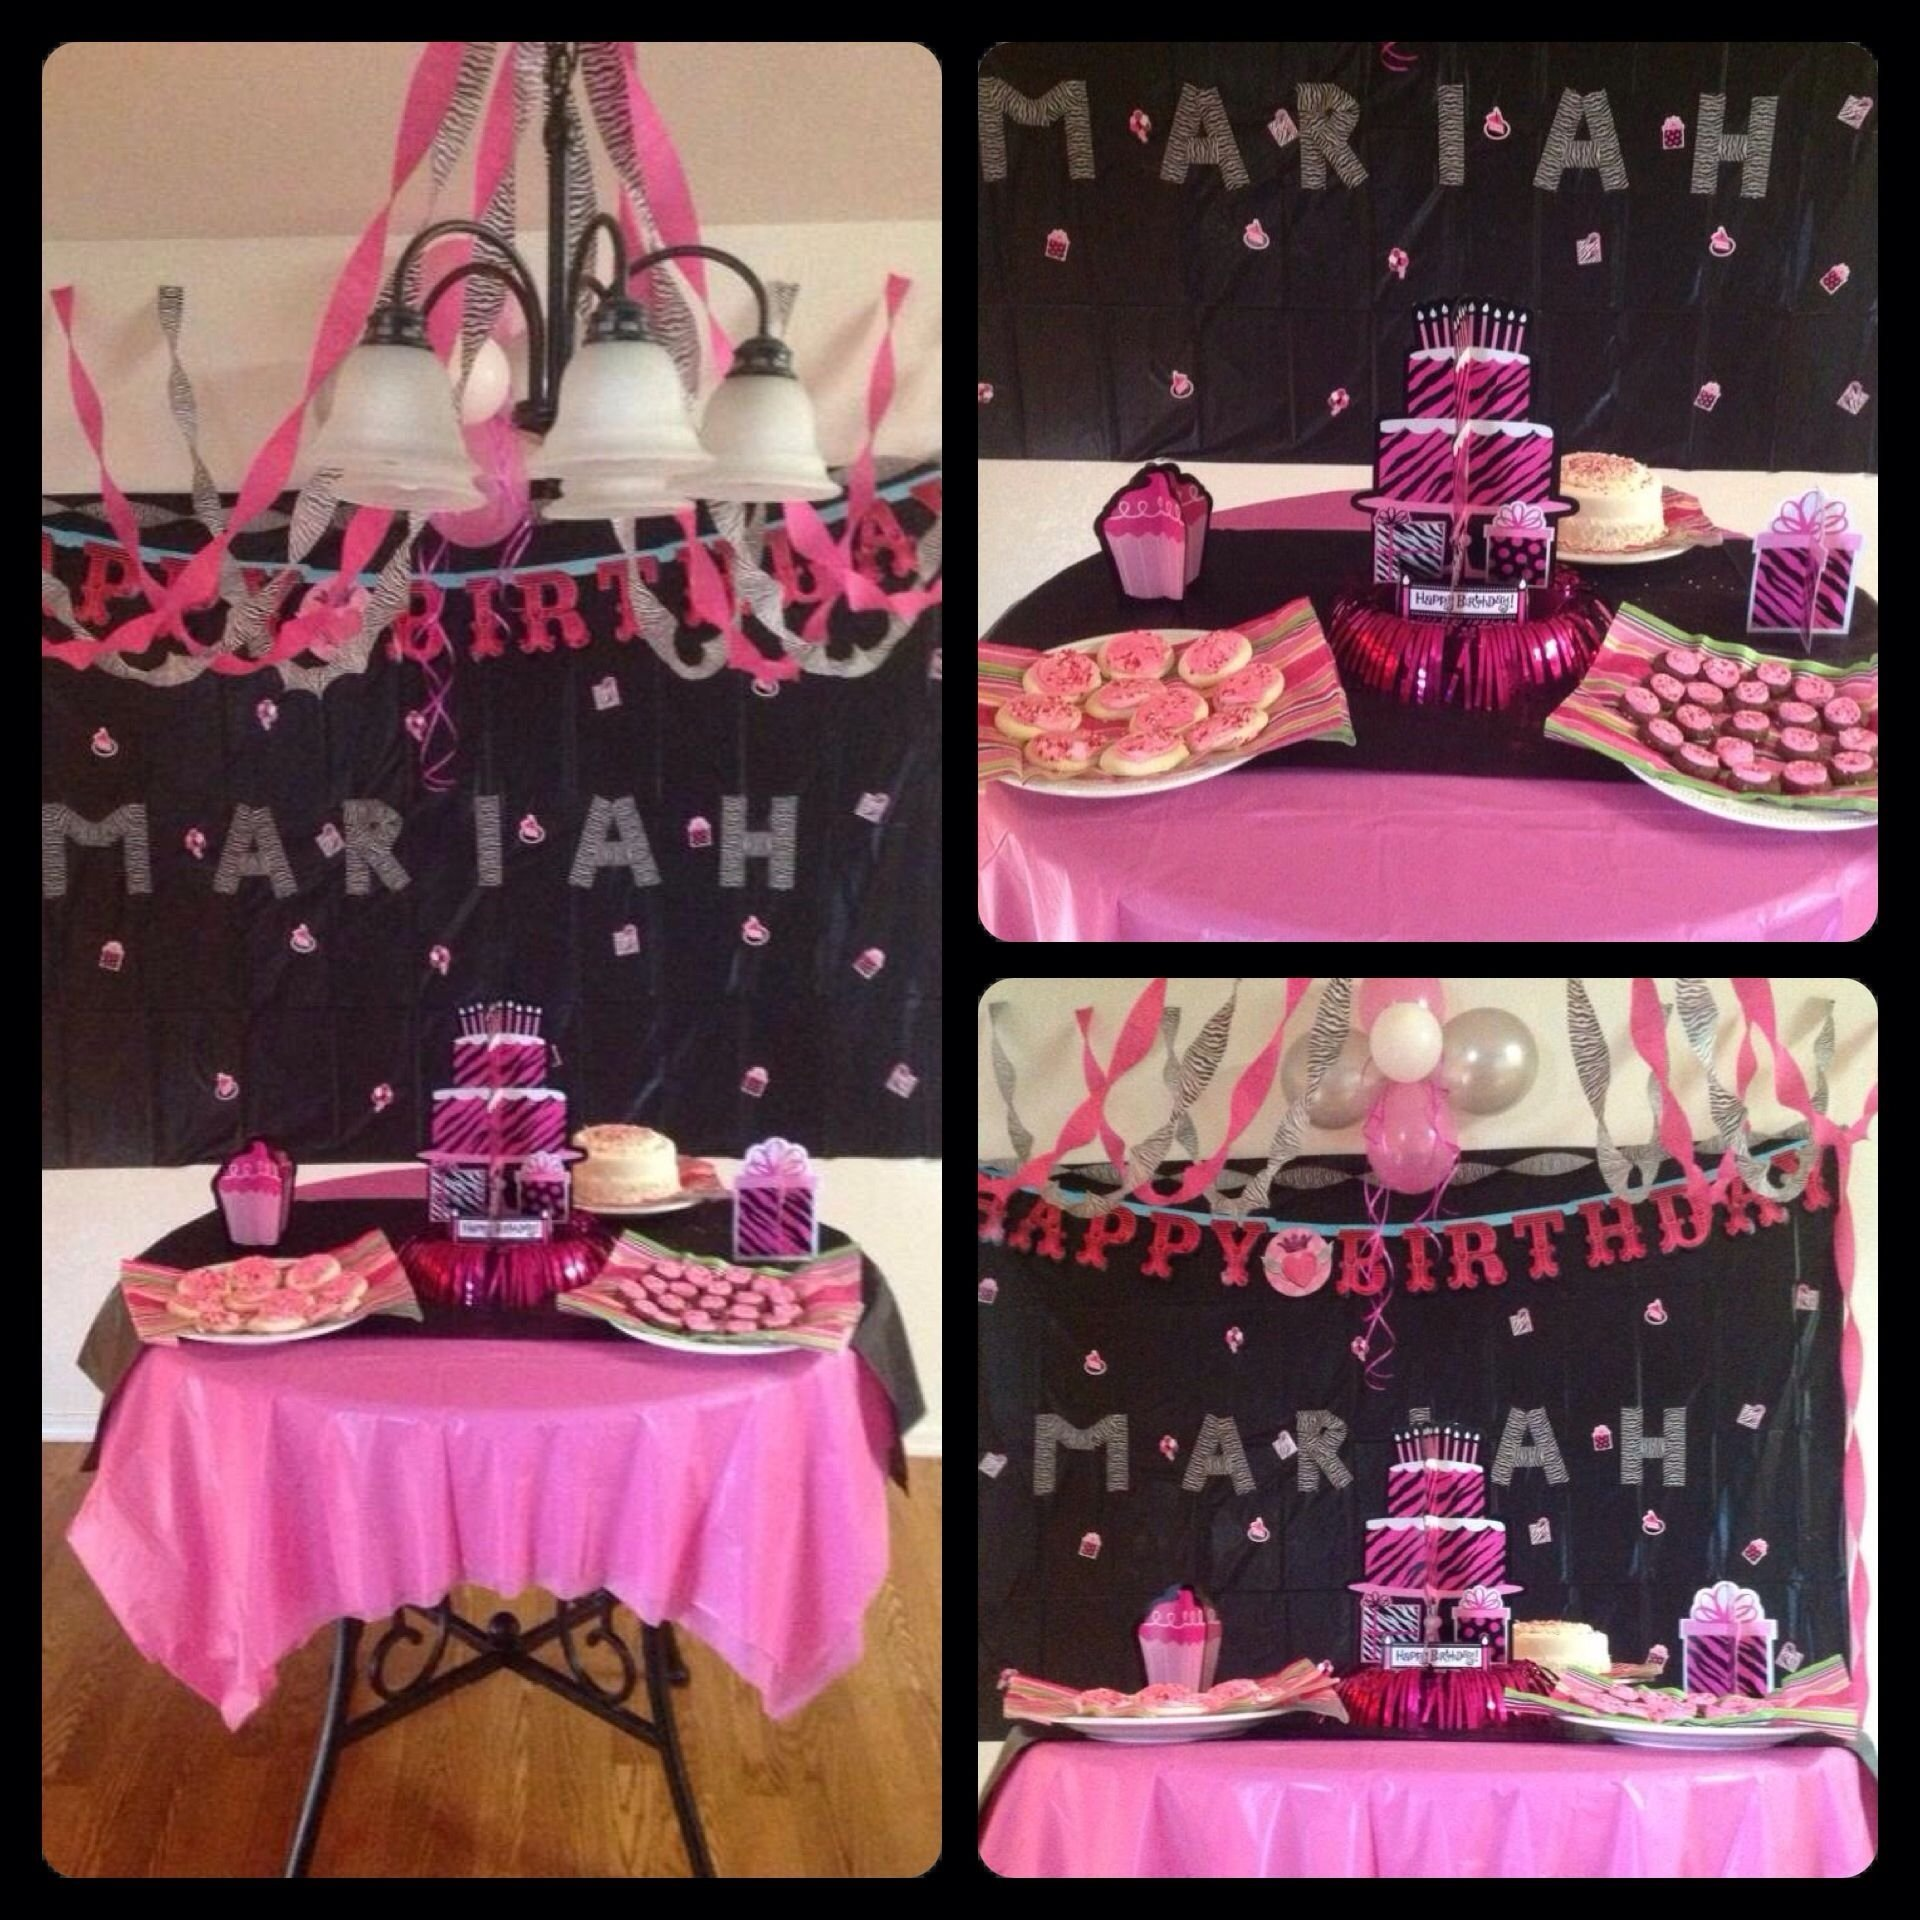 10 Cute Sleepover Ideas For 12 Year Olds party ideas had my 10 year old celebrate her birthday with some 2 2020